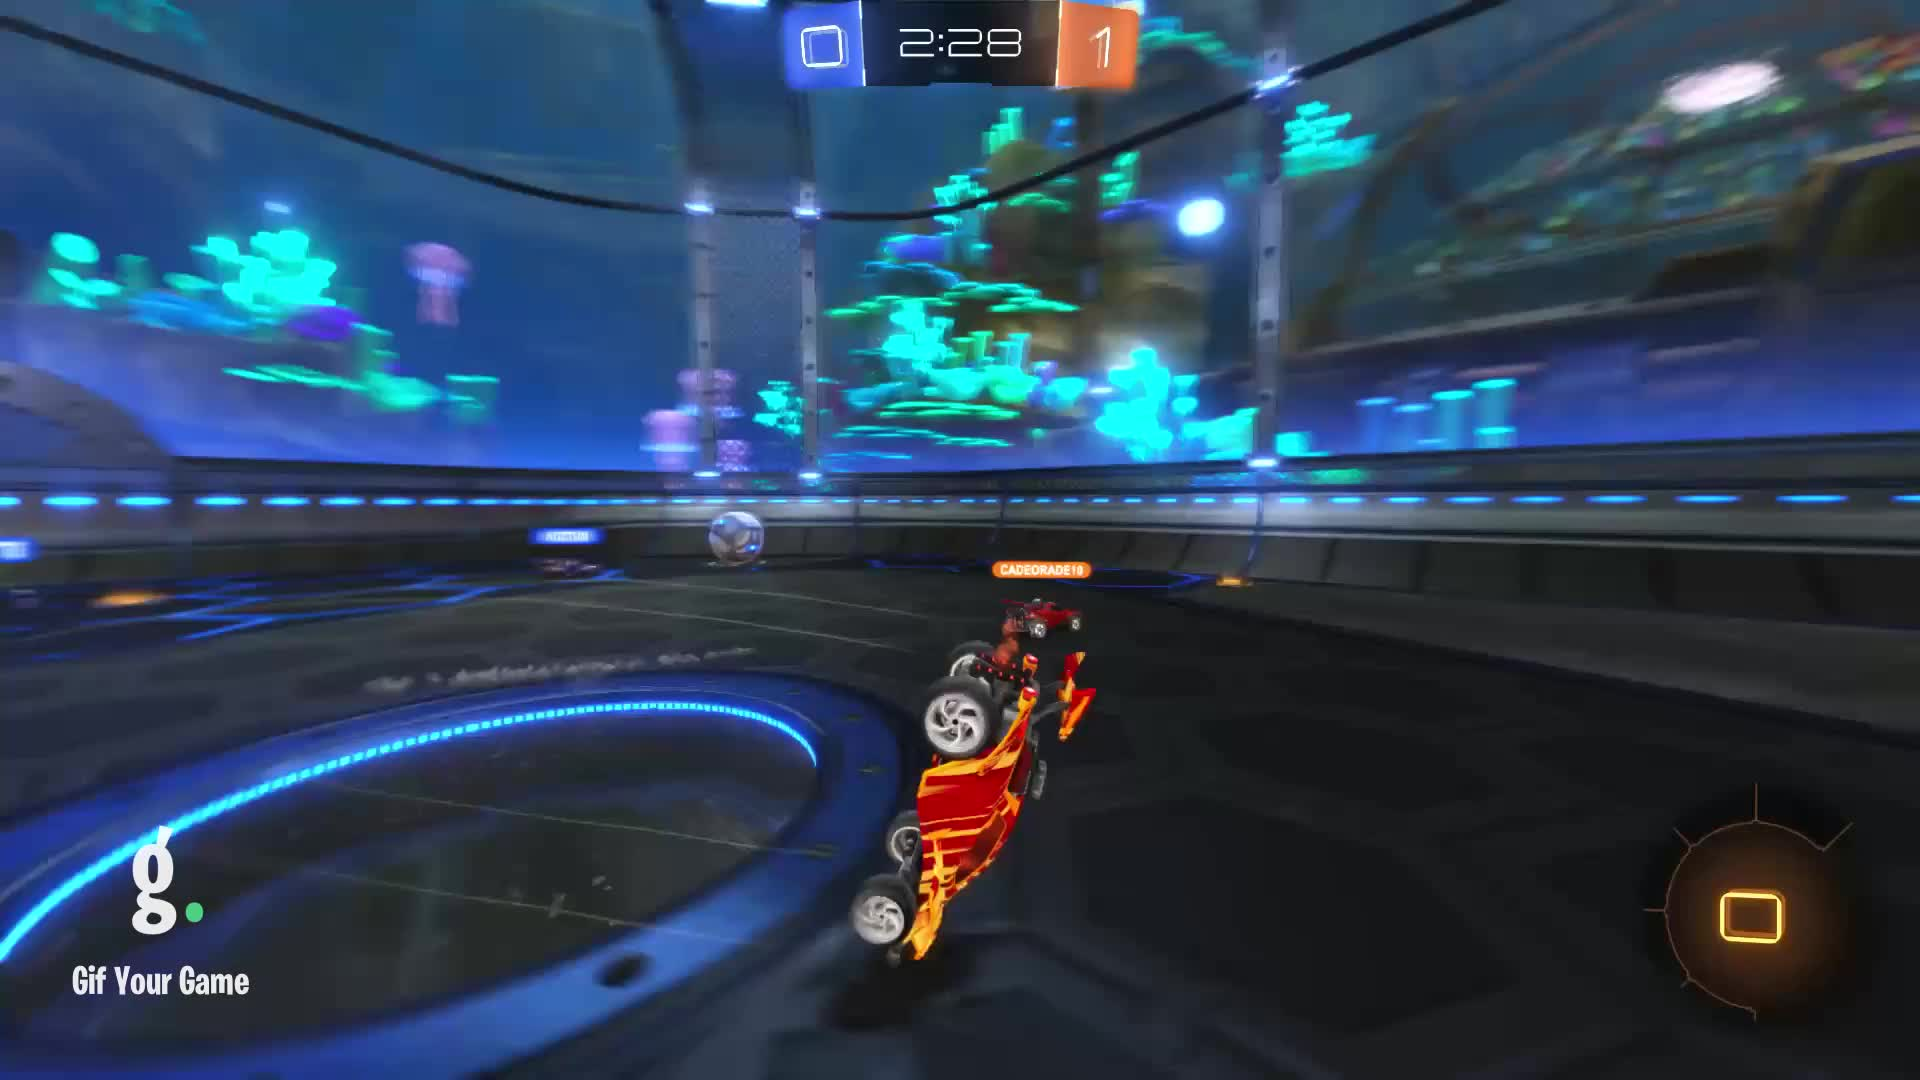 Assist, EtchedTree, Gif Your Game, GifYourGame, Rocket League, RocketLeague, Assist 2: EtchedTree GIFs